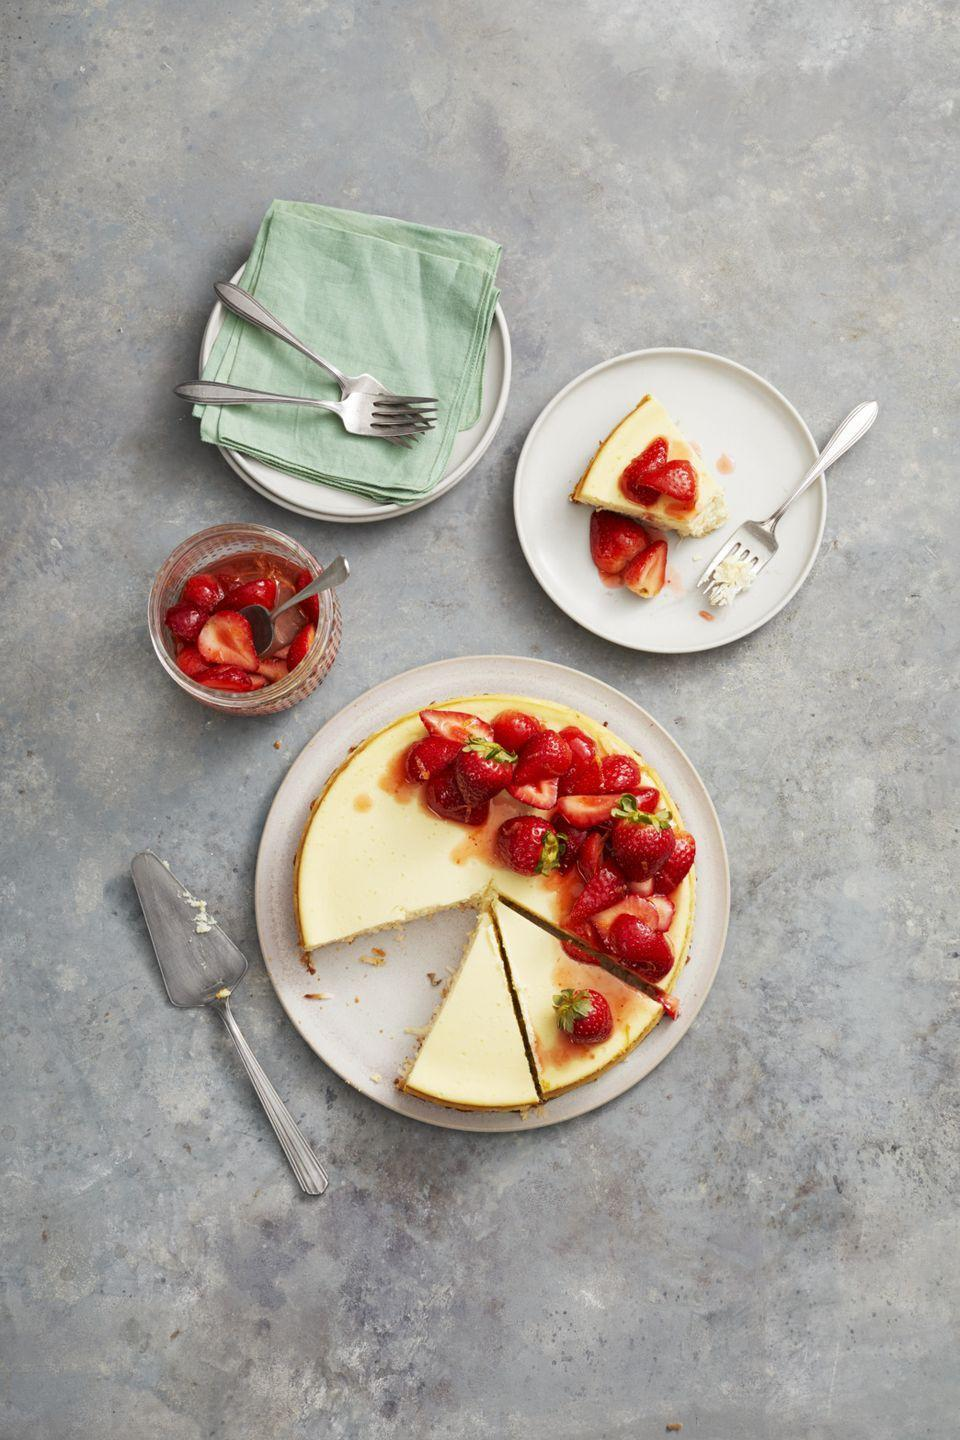 """<p>Fragrant coconut is a terrific (gluten-free!) accent to this berry-laden creamy cheesecake.</p><p><em><a href=""""https://www.goodhousekeeping.com/food-recipes/dessert/a26783658/strawberry-coconut-crust-cheesecake-recipe/"""" rel=""""nofollow noopener"""" target=""""_blank"""" data-ylk=""""slk:Get the recipe for Strawberry Coconut Crust Cheesecake »"""" class=""""link rapid-noclick-resp"""">Get the recipe for Strawberry Coconut Crust Cheesecake »</a></em></p>"""